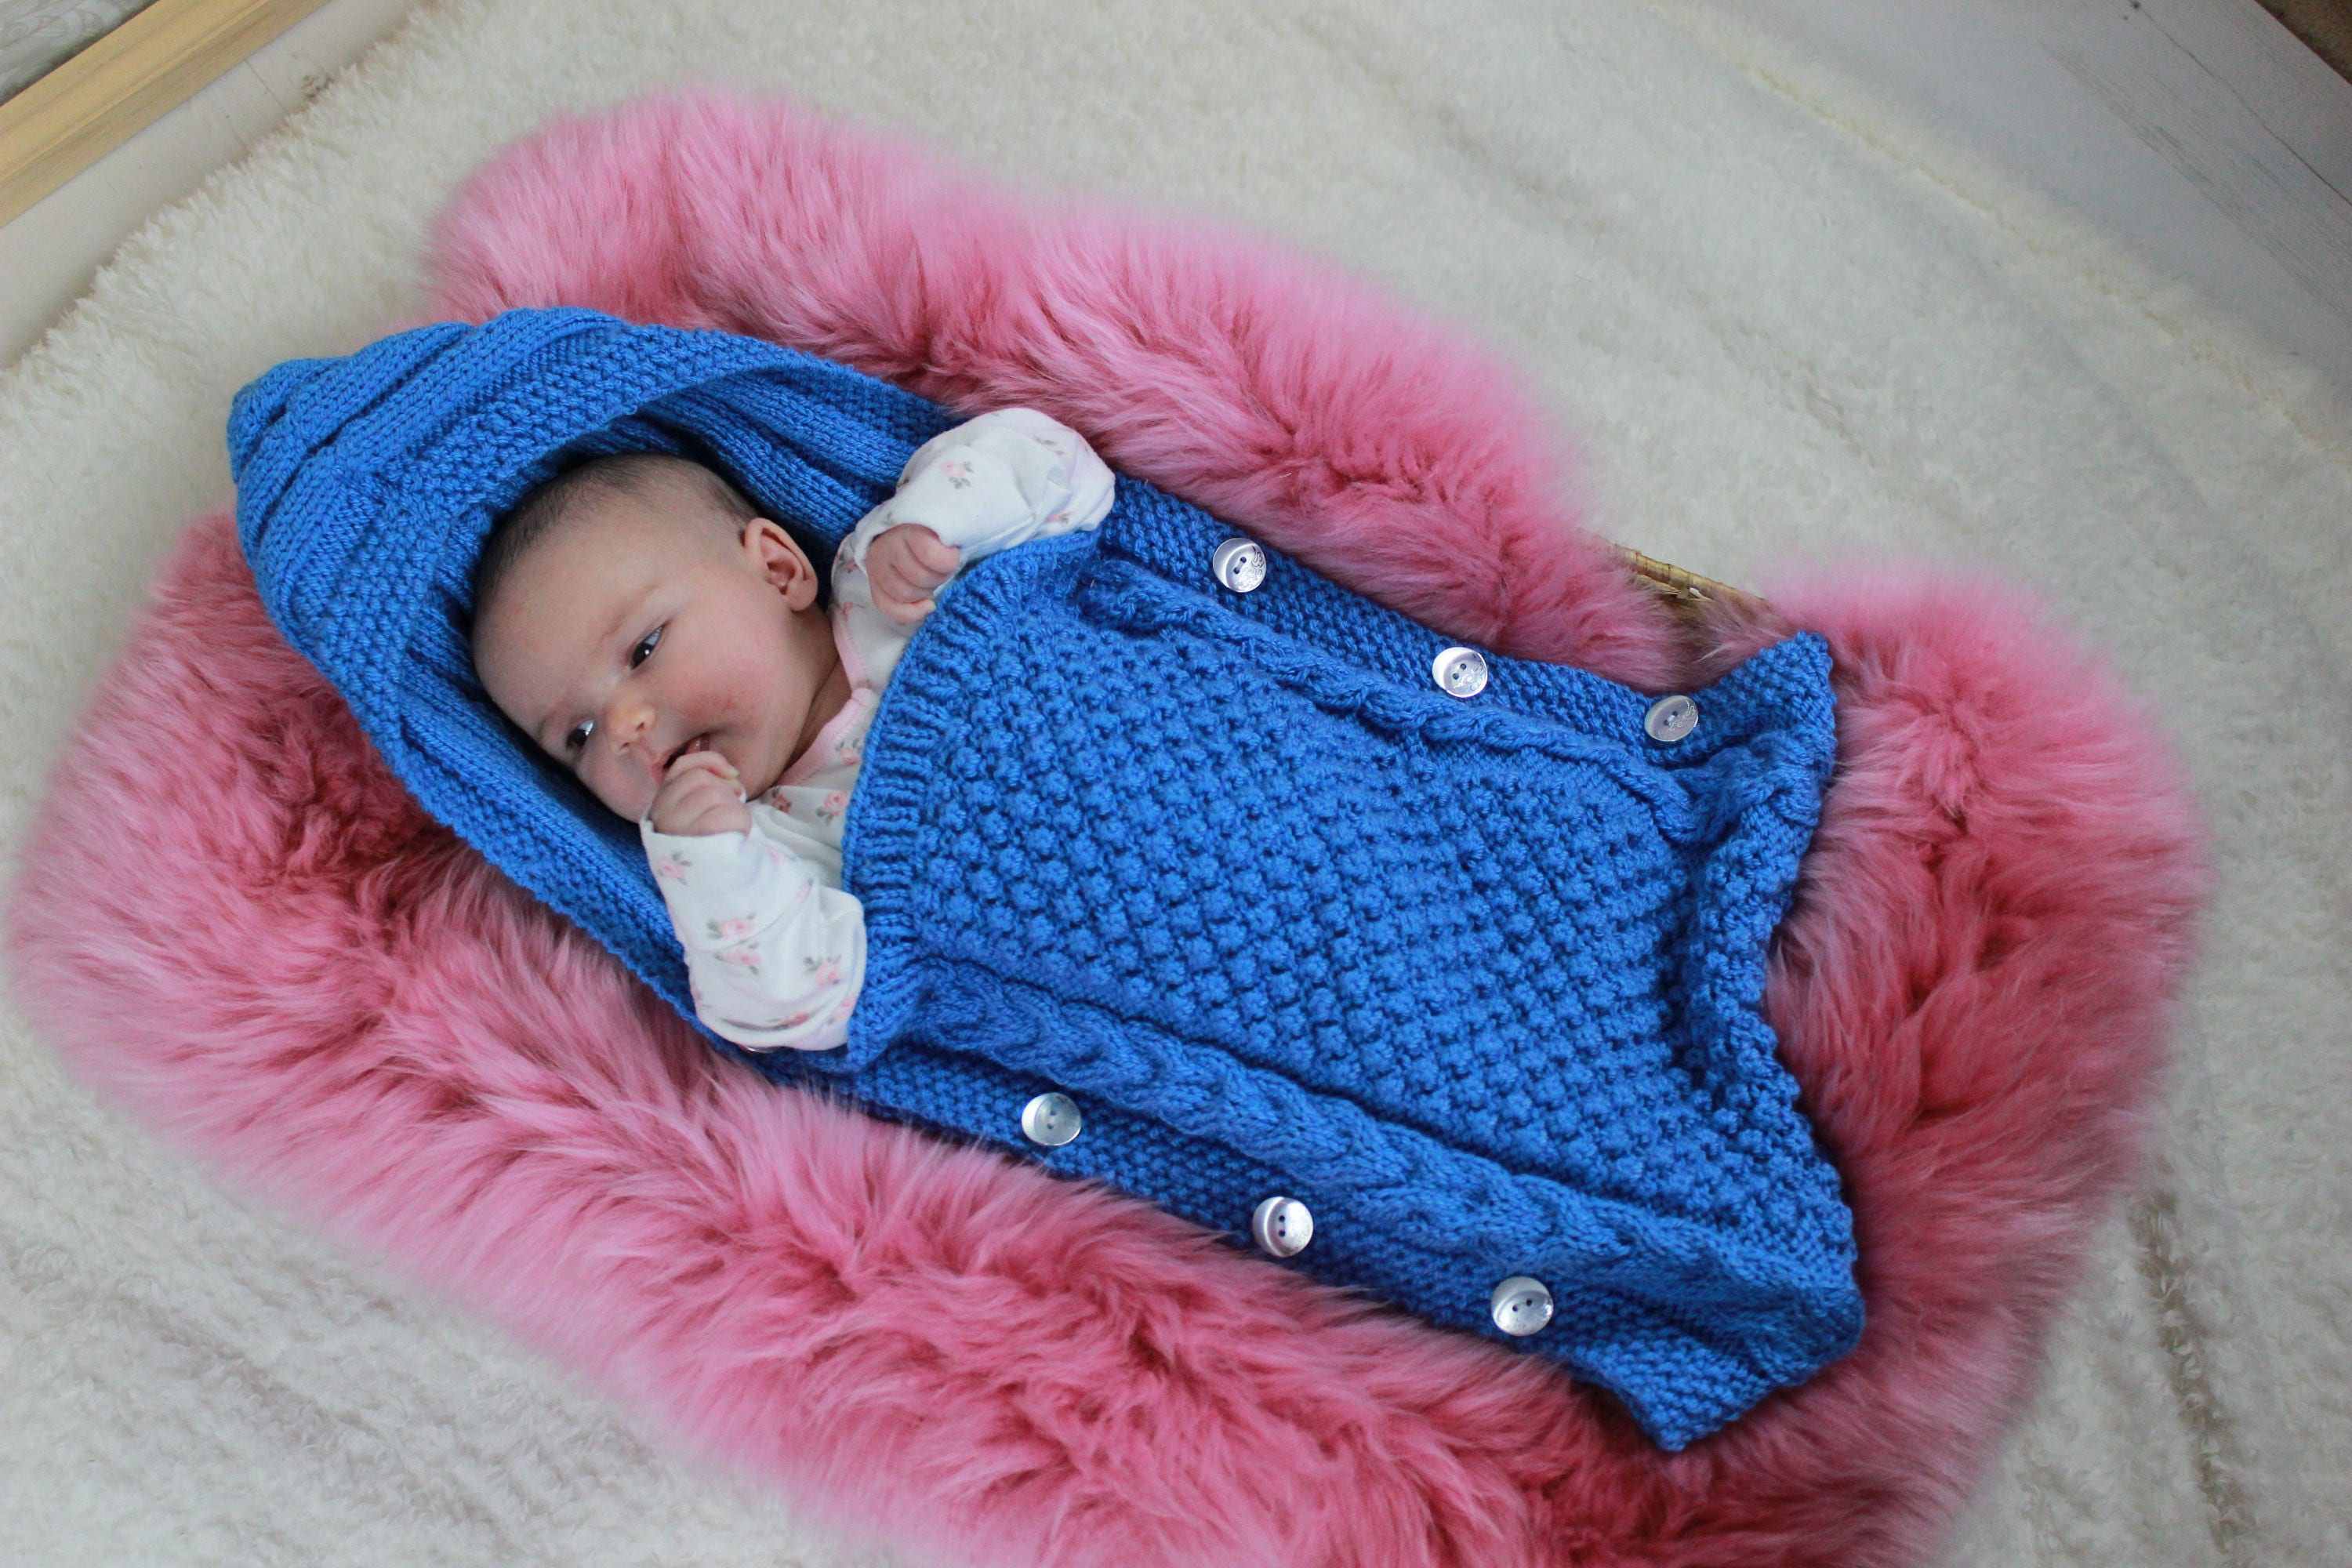 Knitting Pattern Sleeping Bag Baby : KNITTING PATTERN For Baby Sleeping Bag Cocoon Papoose